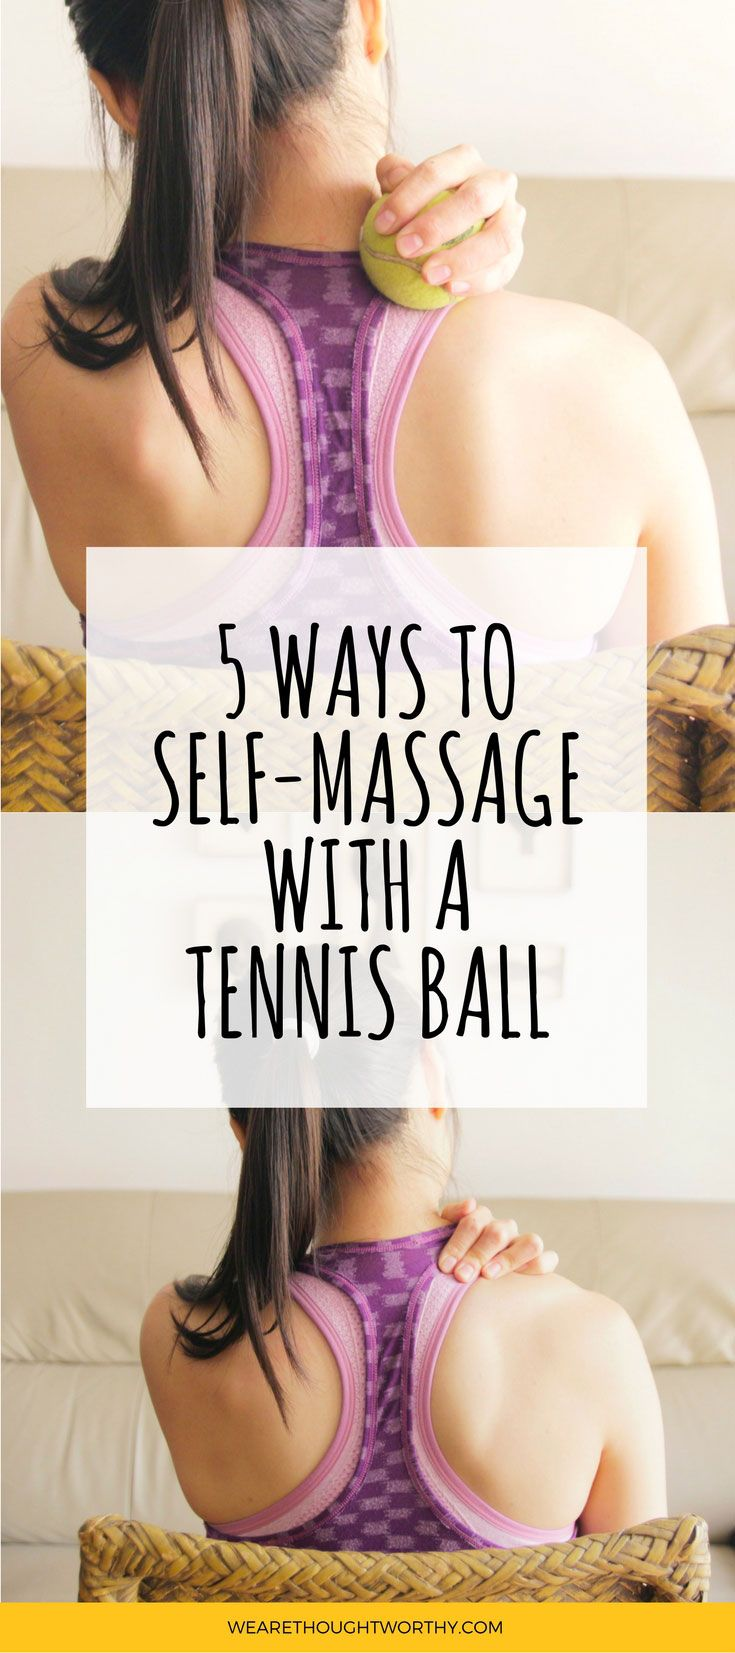 5 Ways To Self Massage With A Tennis Ball Thoughtworthy Narrative Self Massage Massage Massage Therapy